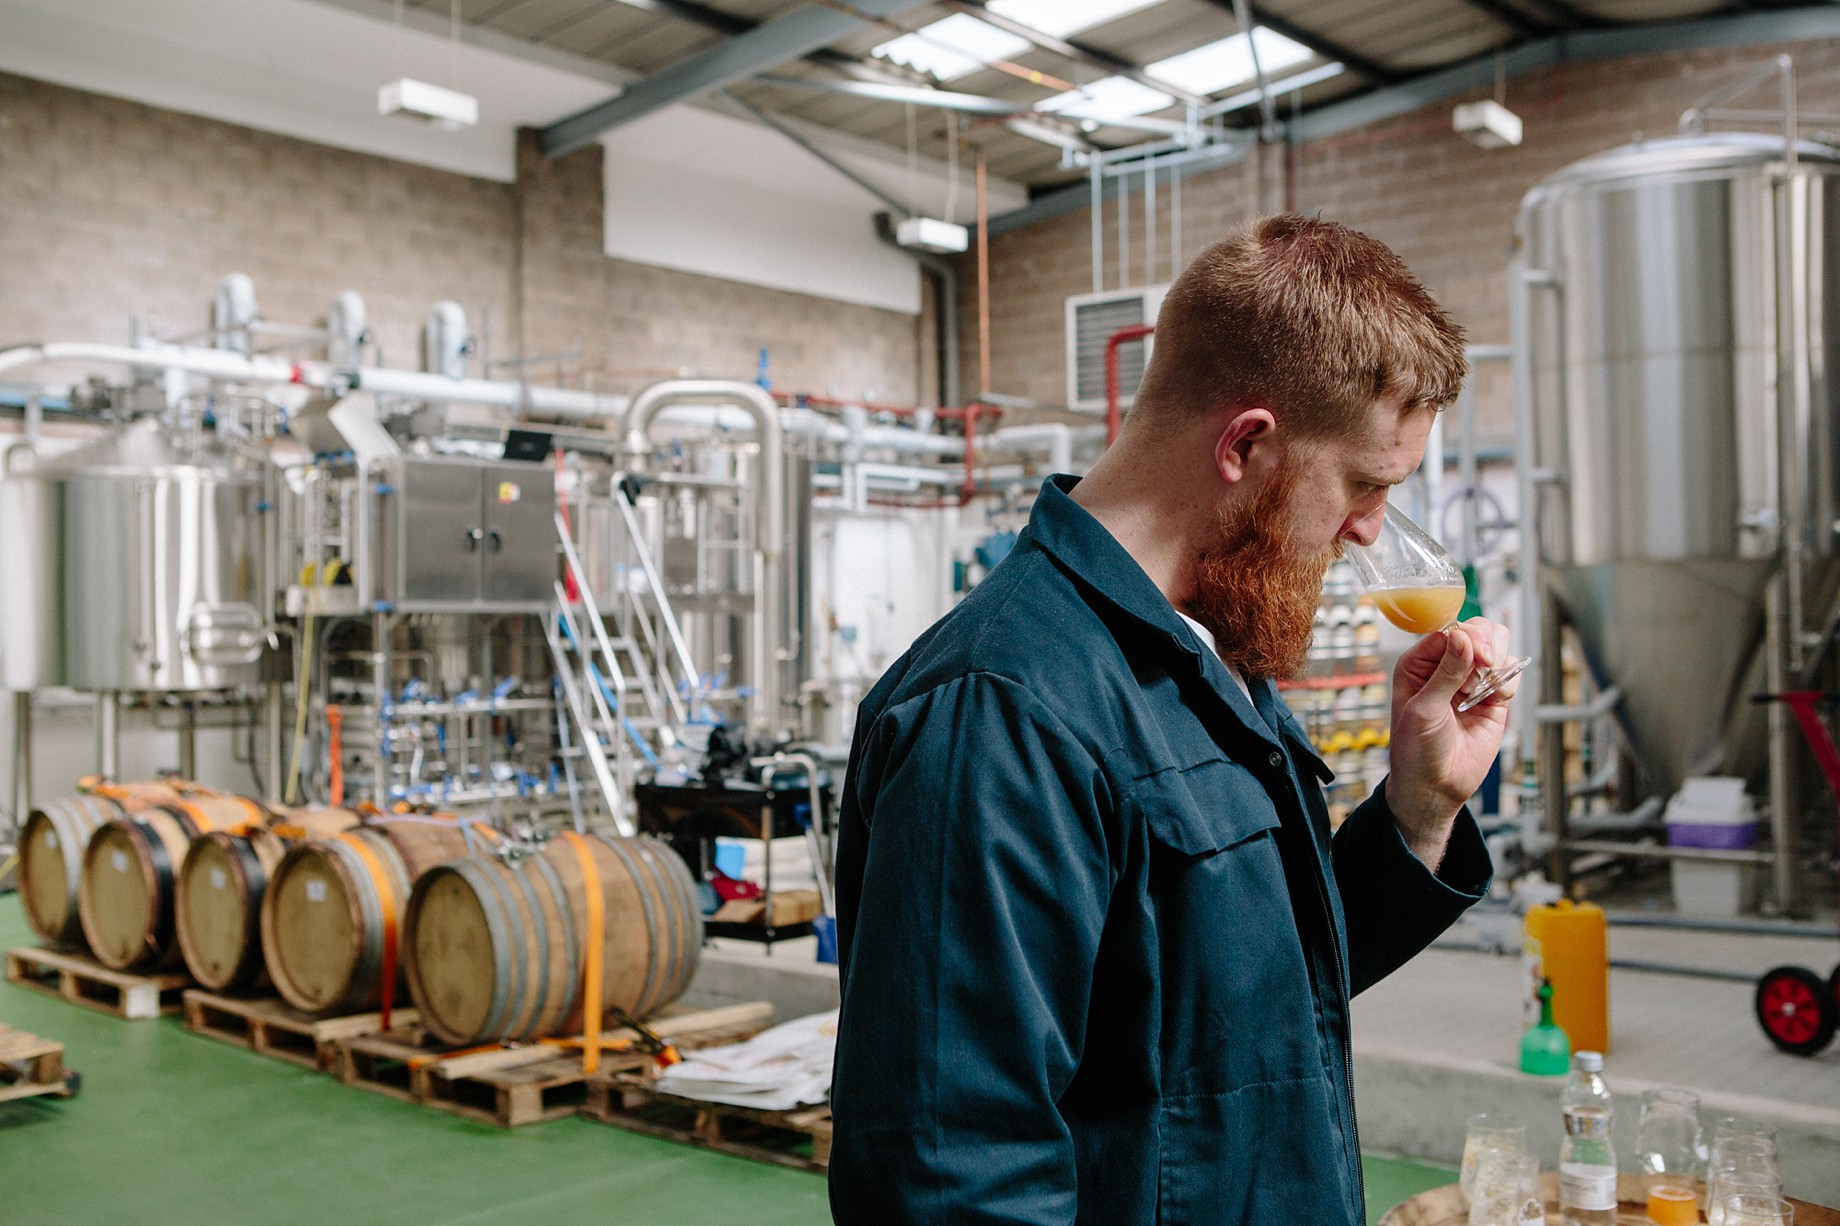 Cloudwater_brew_Co_010_paul_tank tasting_mark_newton_photography.JPG